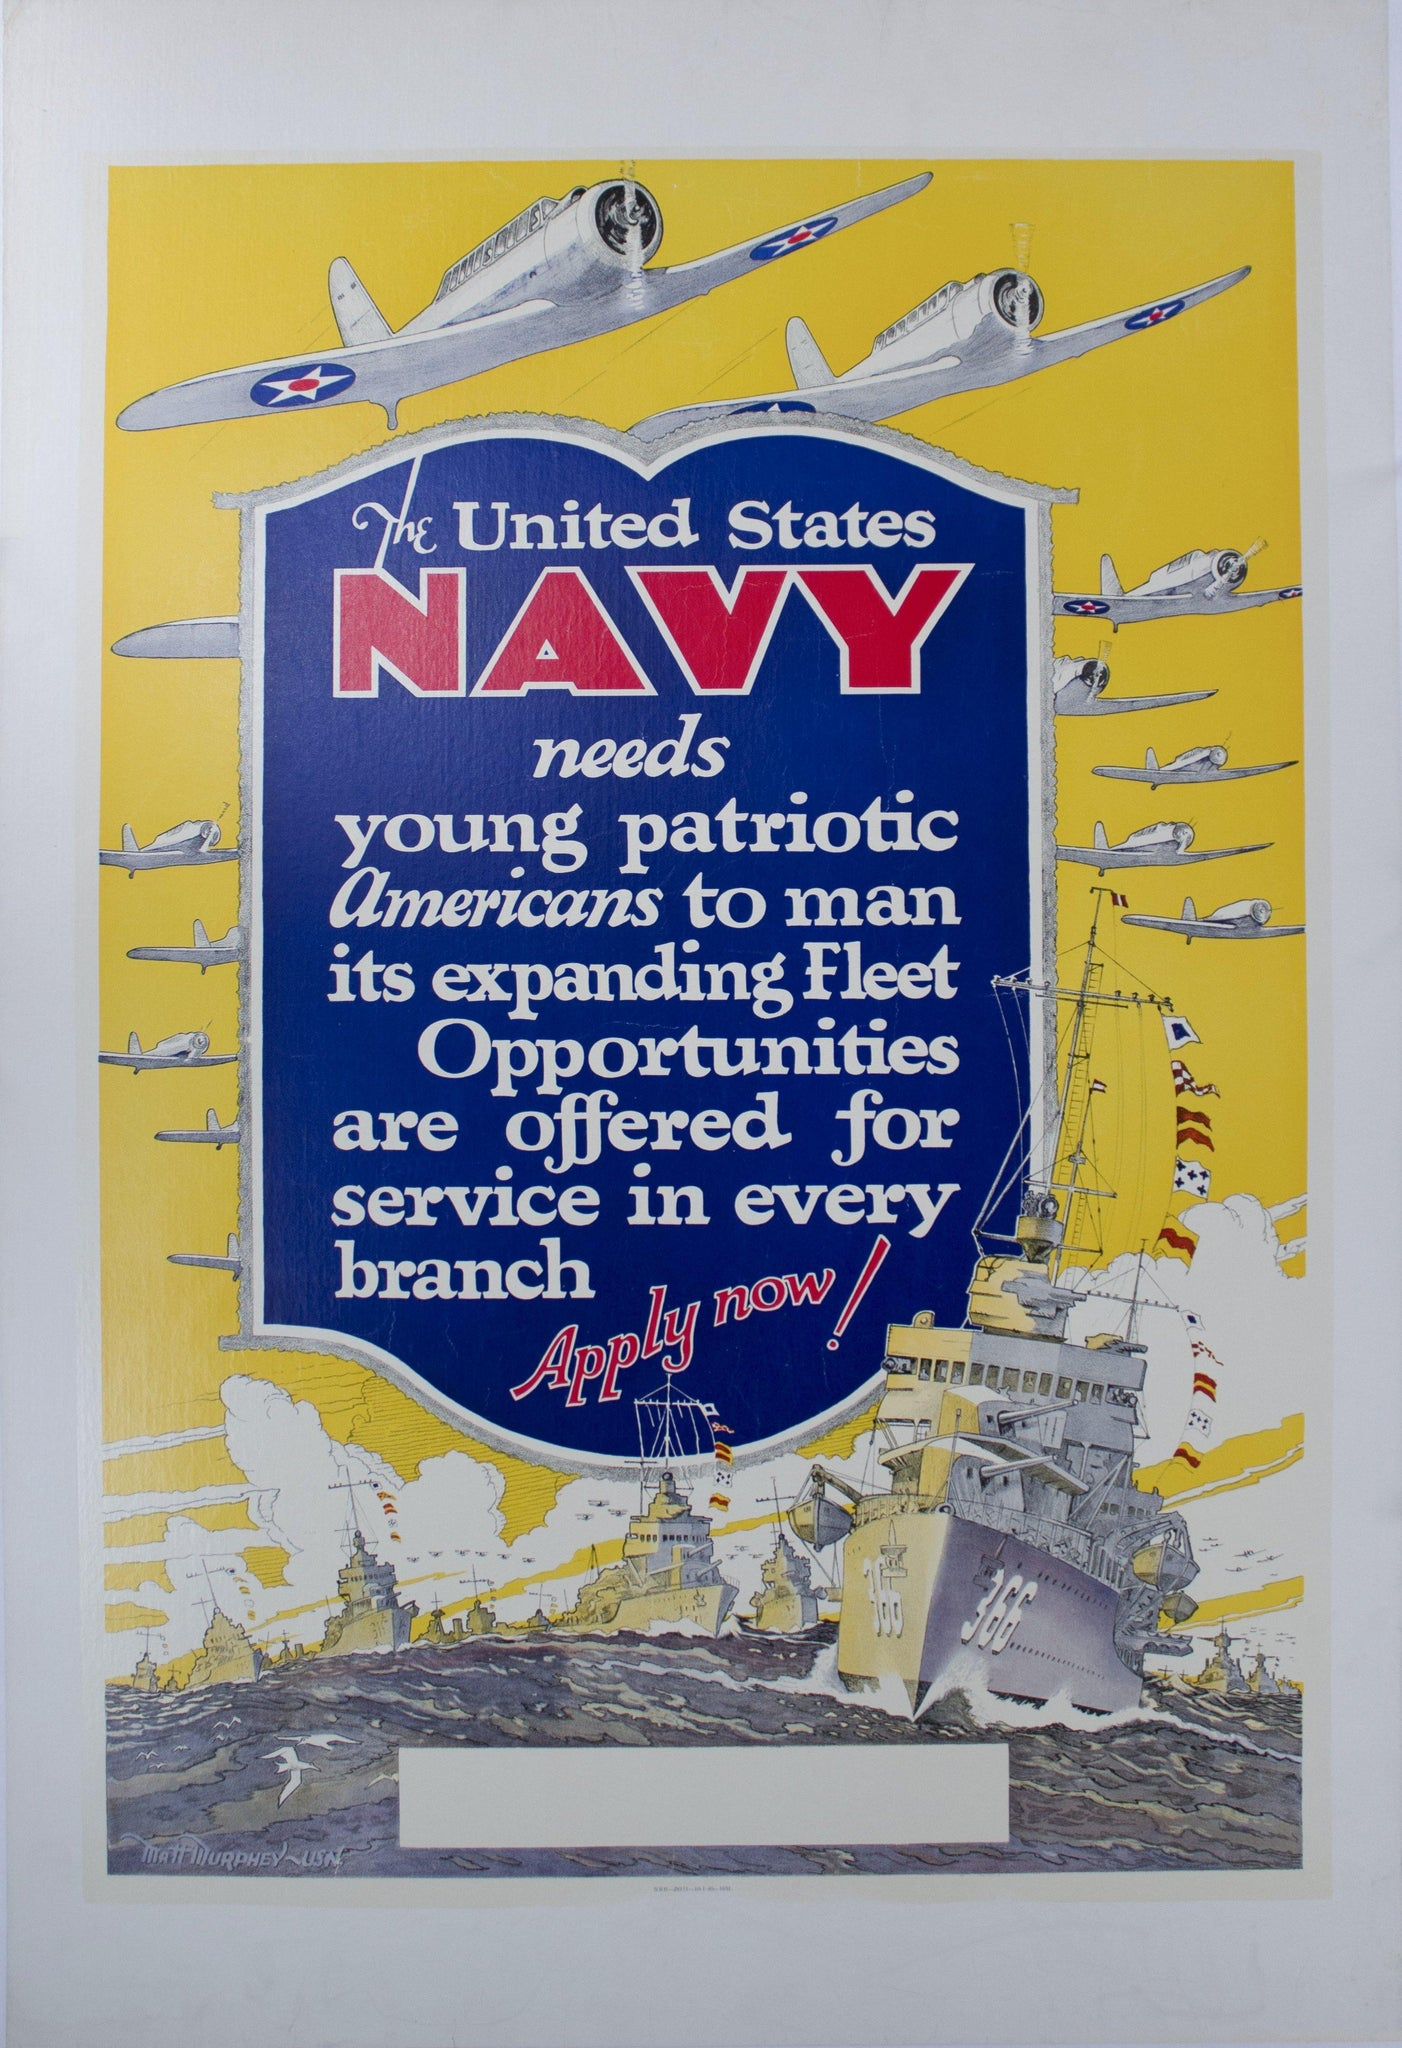 1940 United States Navy Needs Young Patriotic Americans - Golden Age Posters